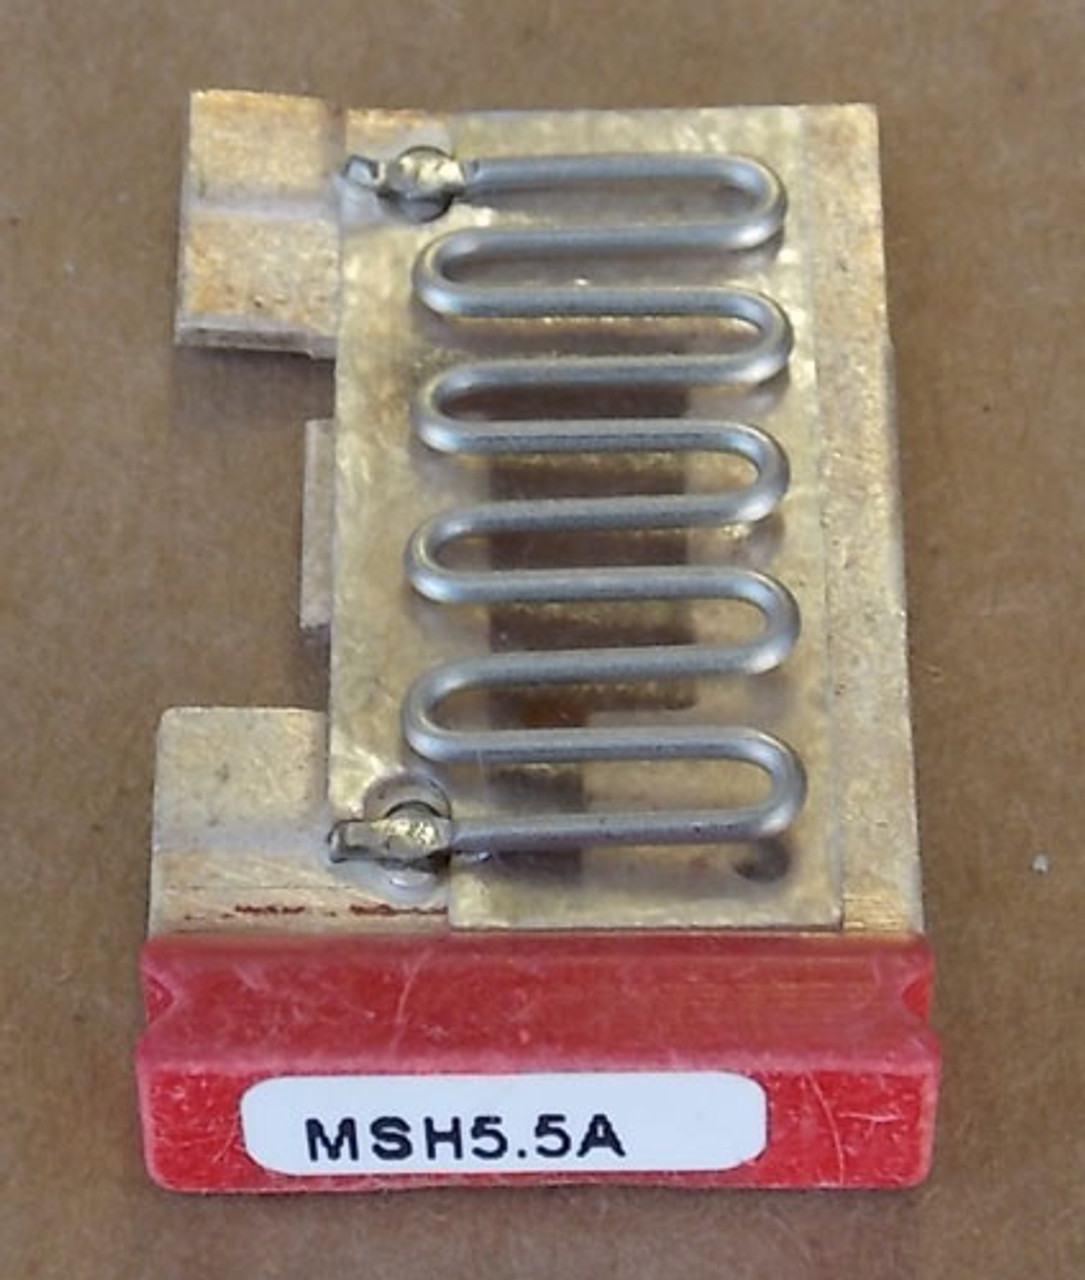 Cutler Hammer MSH5.5A 4.40 - 4.79A Overload Relay Heater Element (3Pc) - New